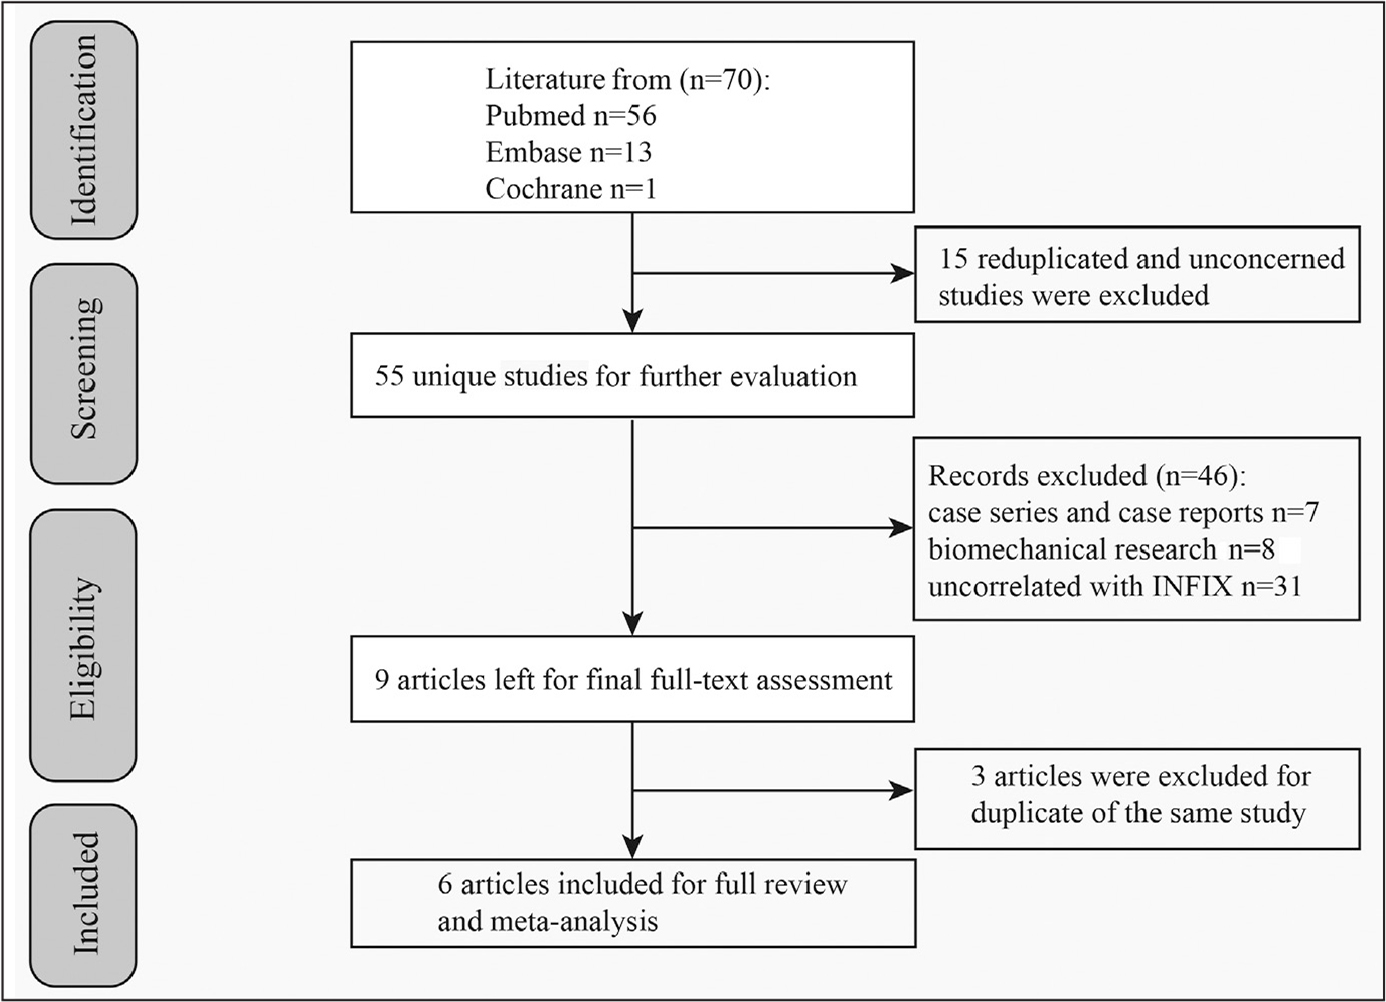 Flow diagram of the literature search for the meta-analysis. Abbreviation: INFIX, internal fixator.